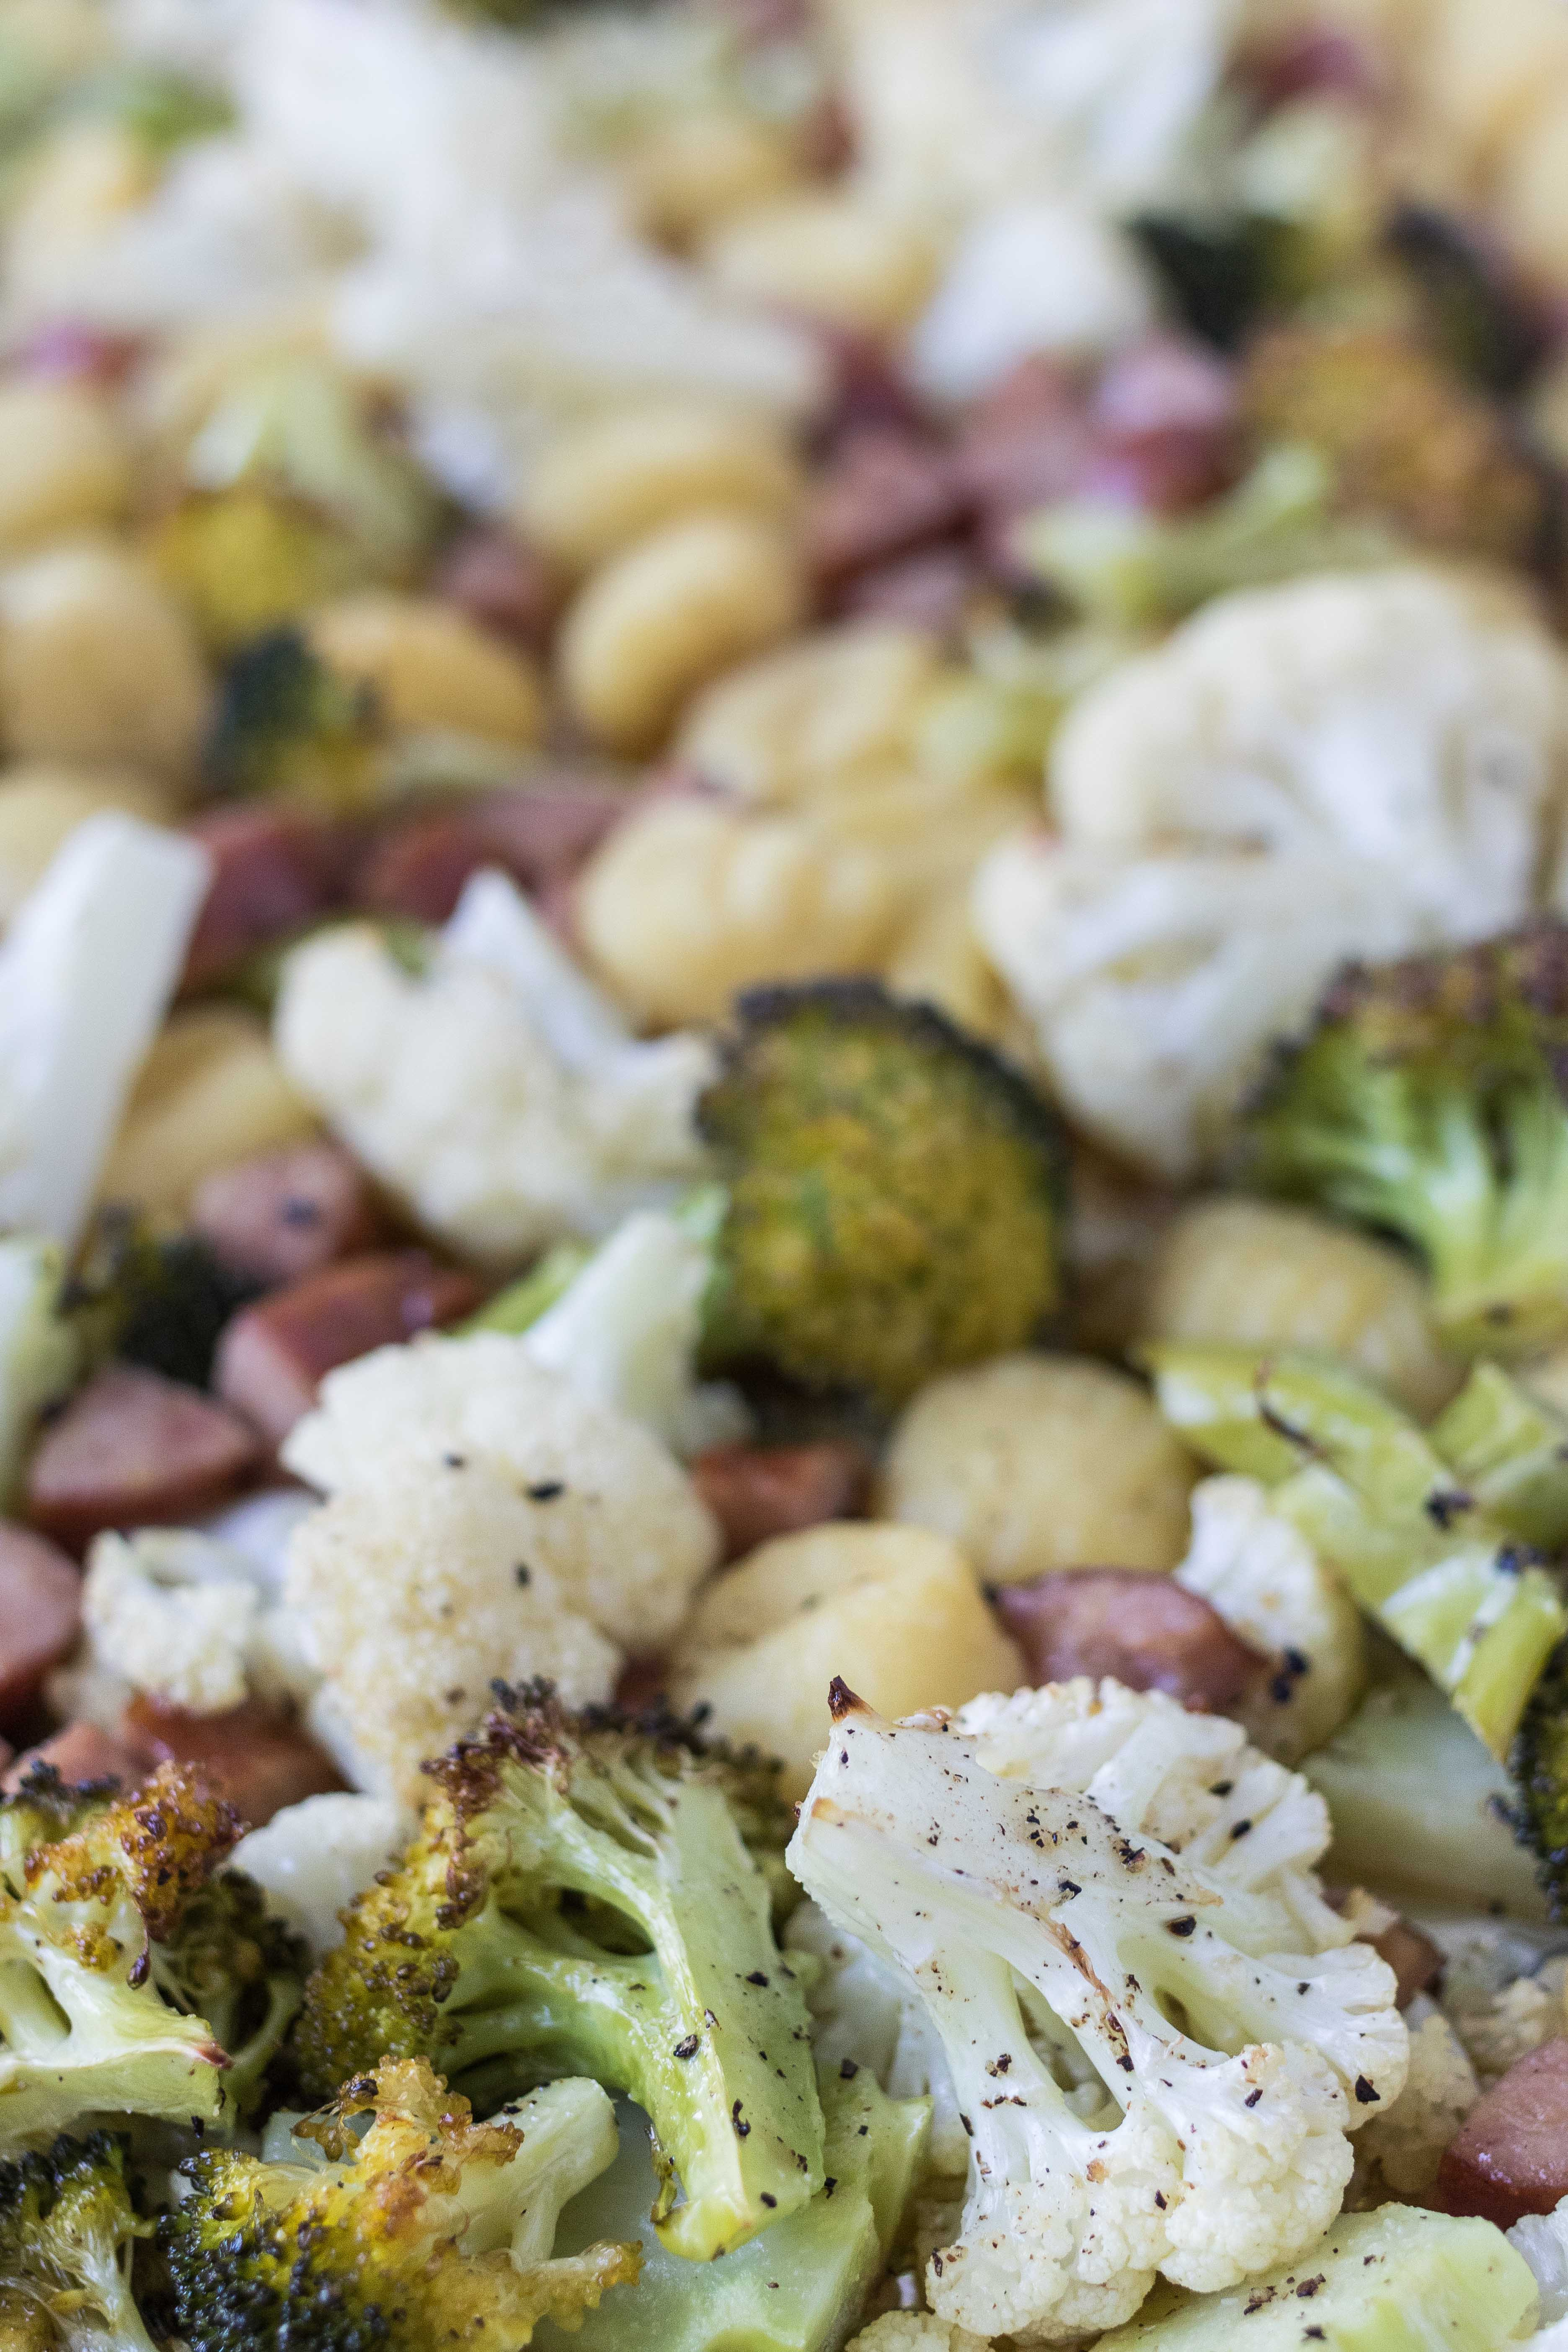 Roasted, crispy sheet pan gnocchi, chicken sausage, broccoli, and cauliflower. #sheetpandinner #healthyeating #chickensausage | https://www.roseclearfield.com